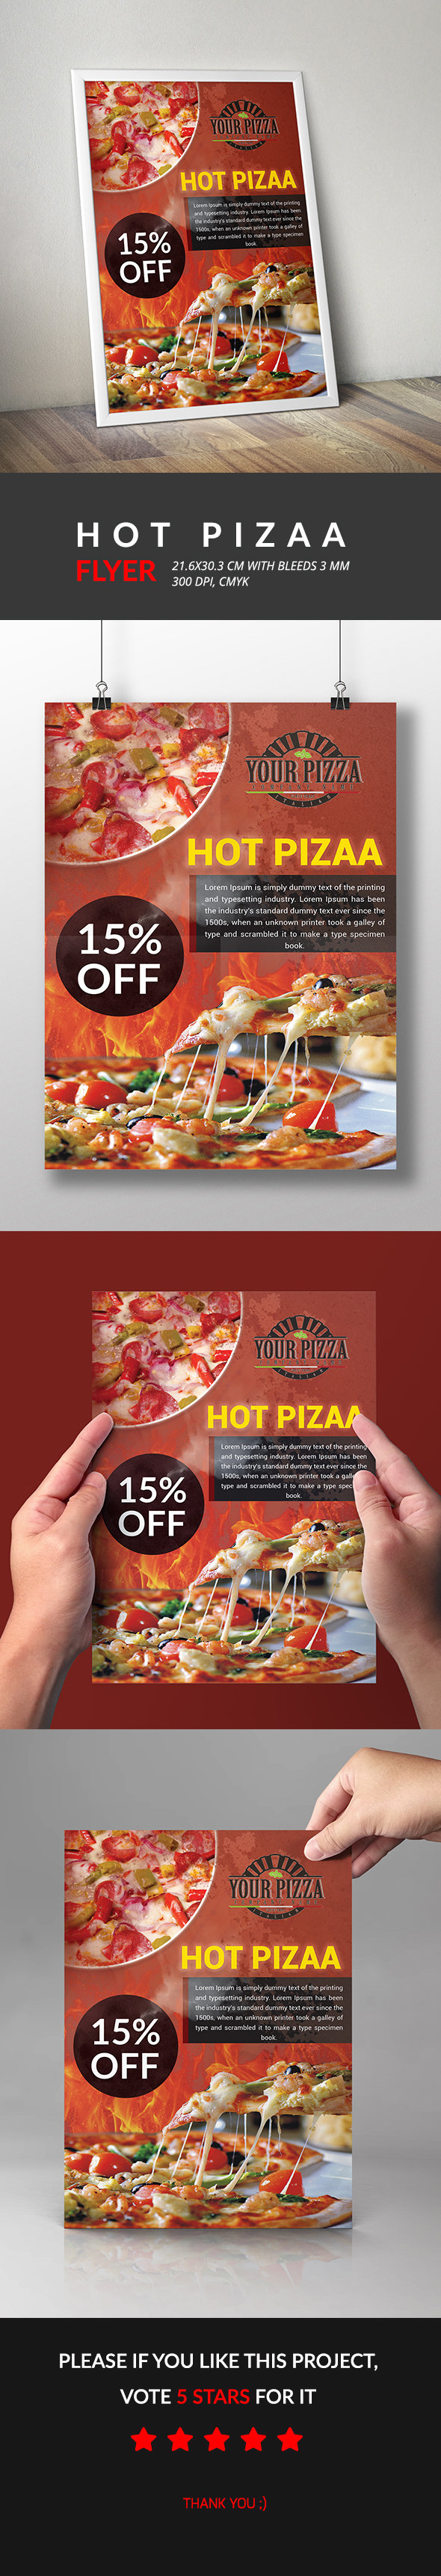 Hot Pizaa Flyer